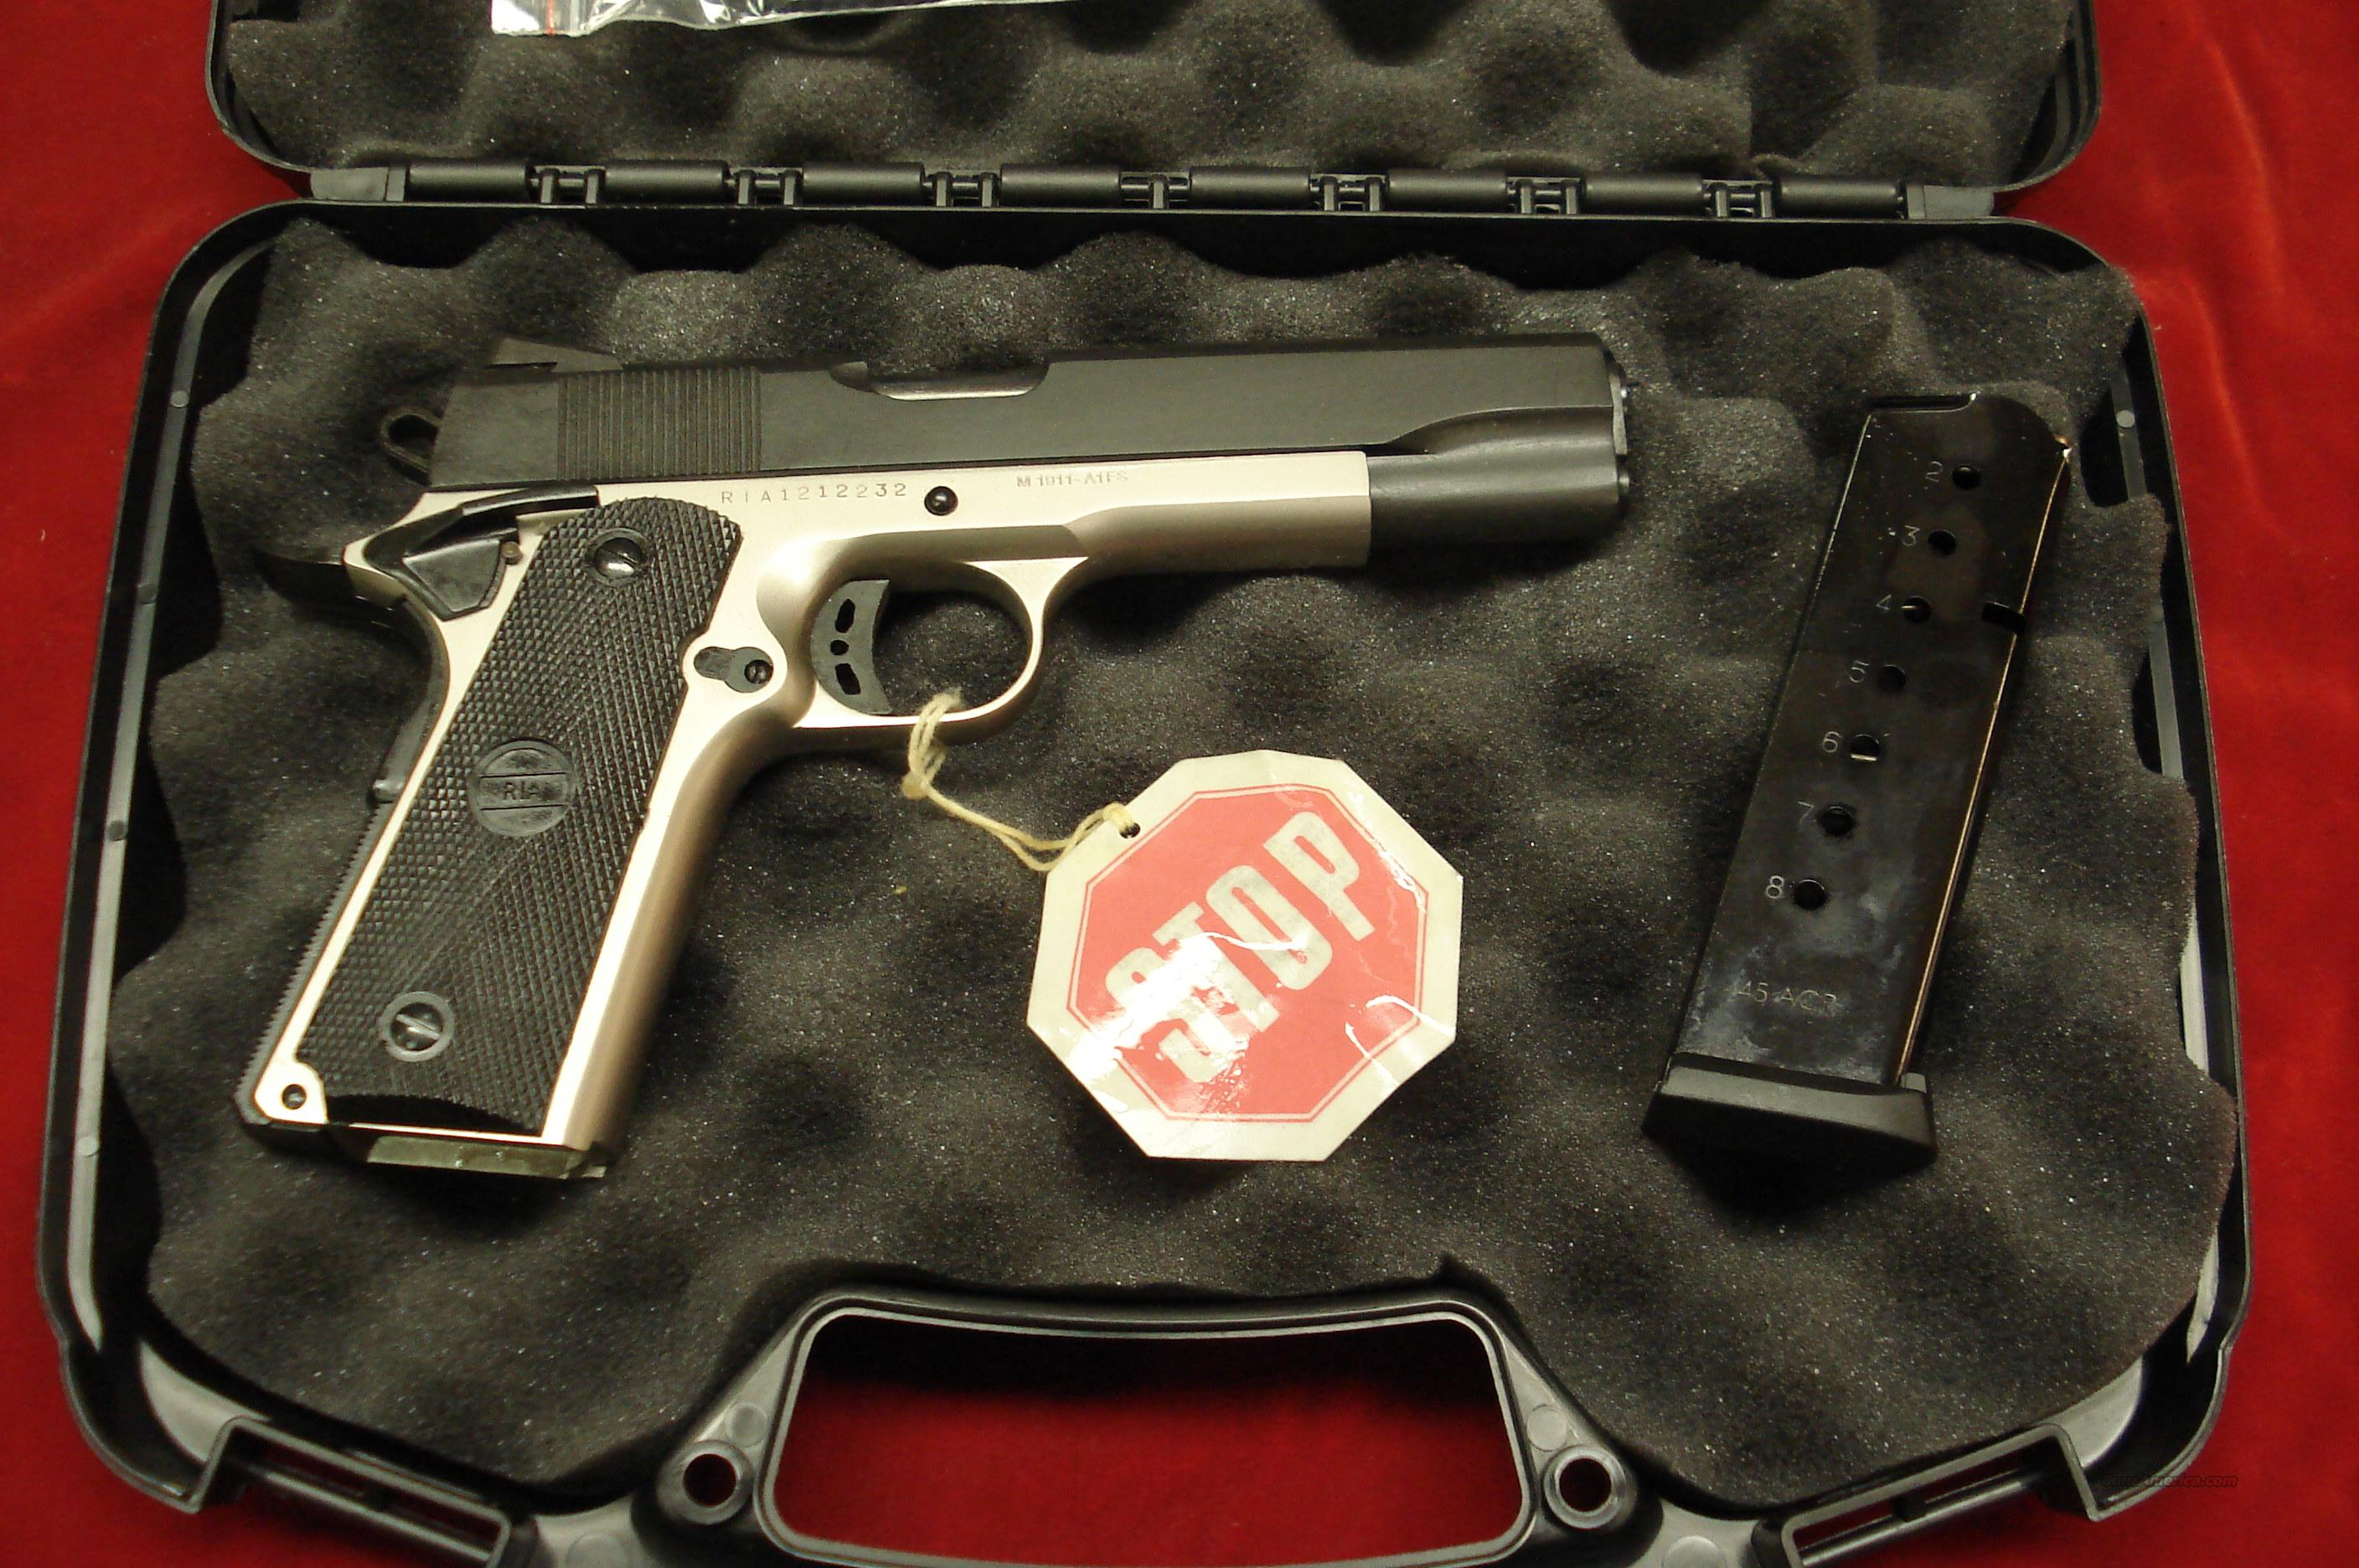 ROCK ISLAND ARMORY 1911-A1 FS TACTICAL DUO-TONE NEW  Guns > Pistols > 1911 Pistol Copies (non-Colt)